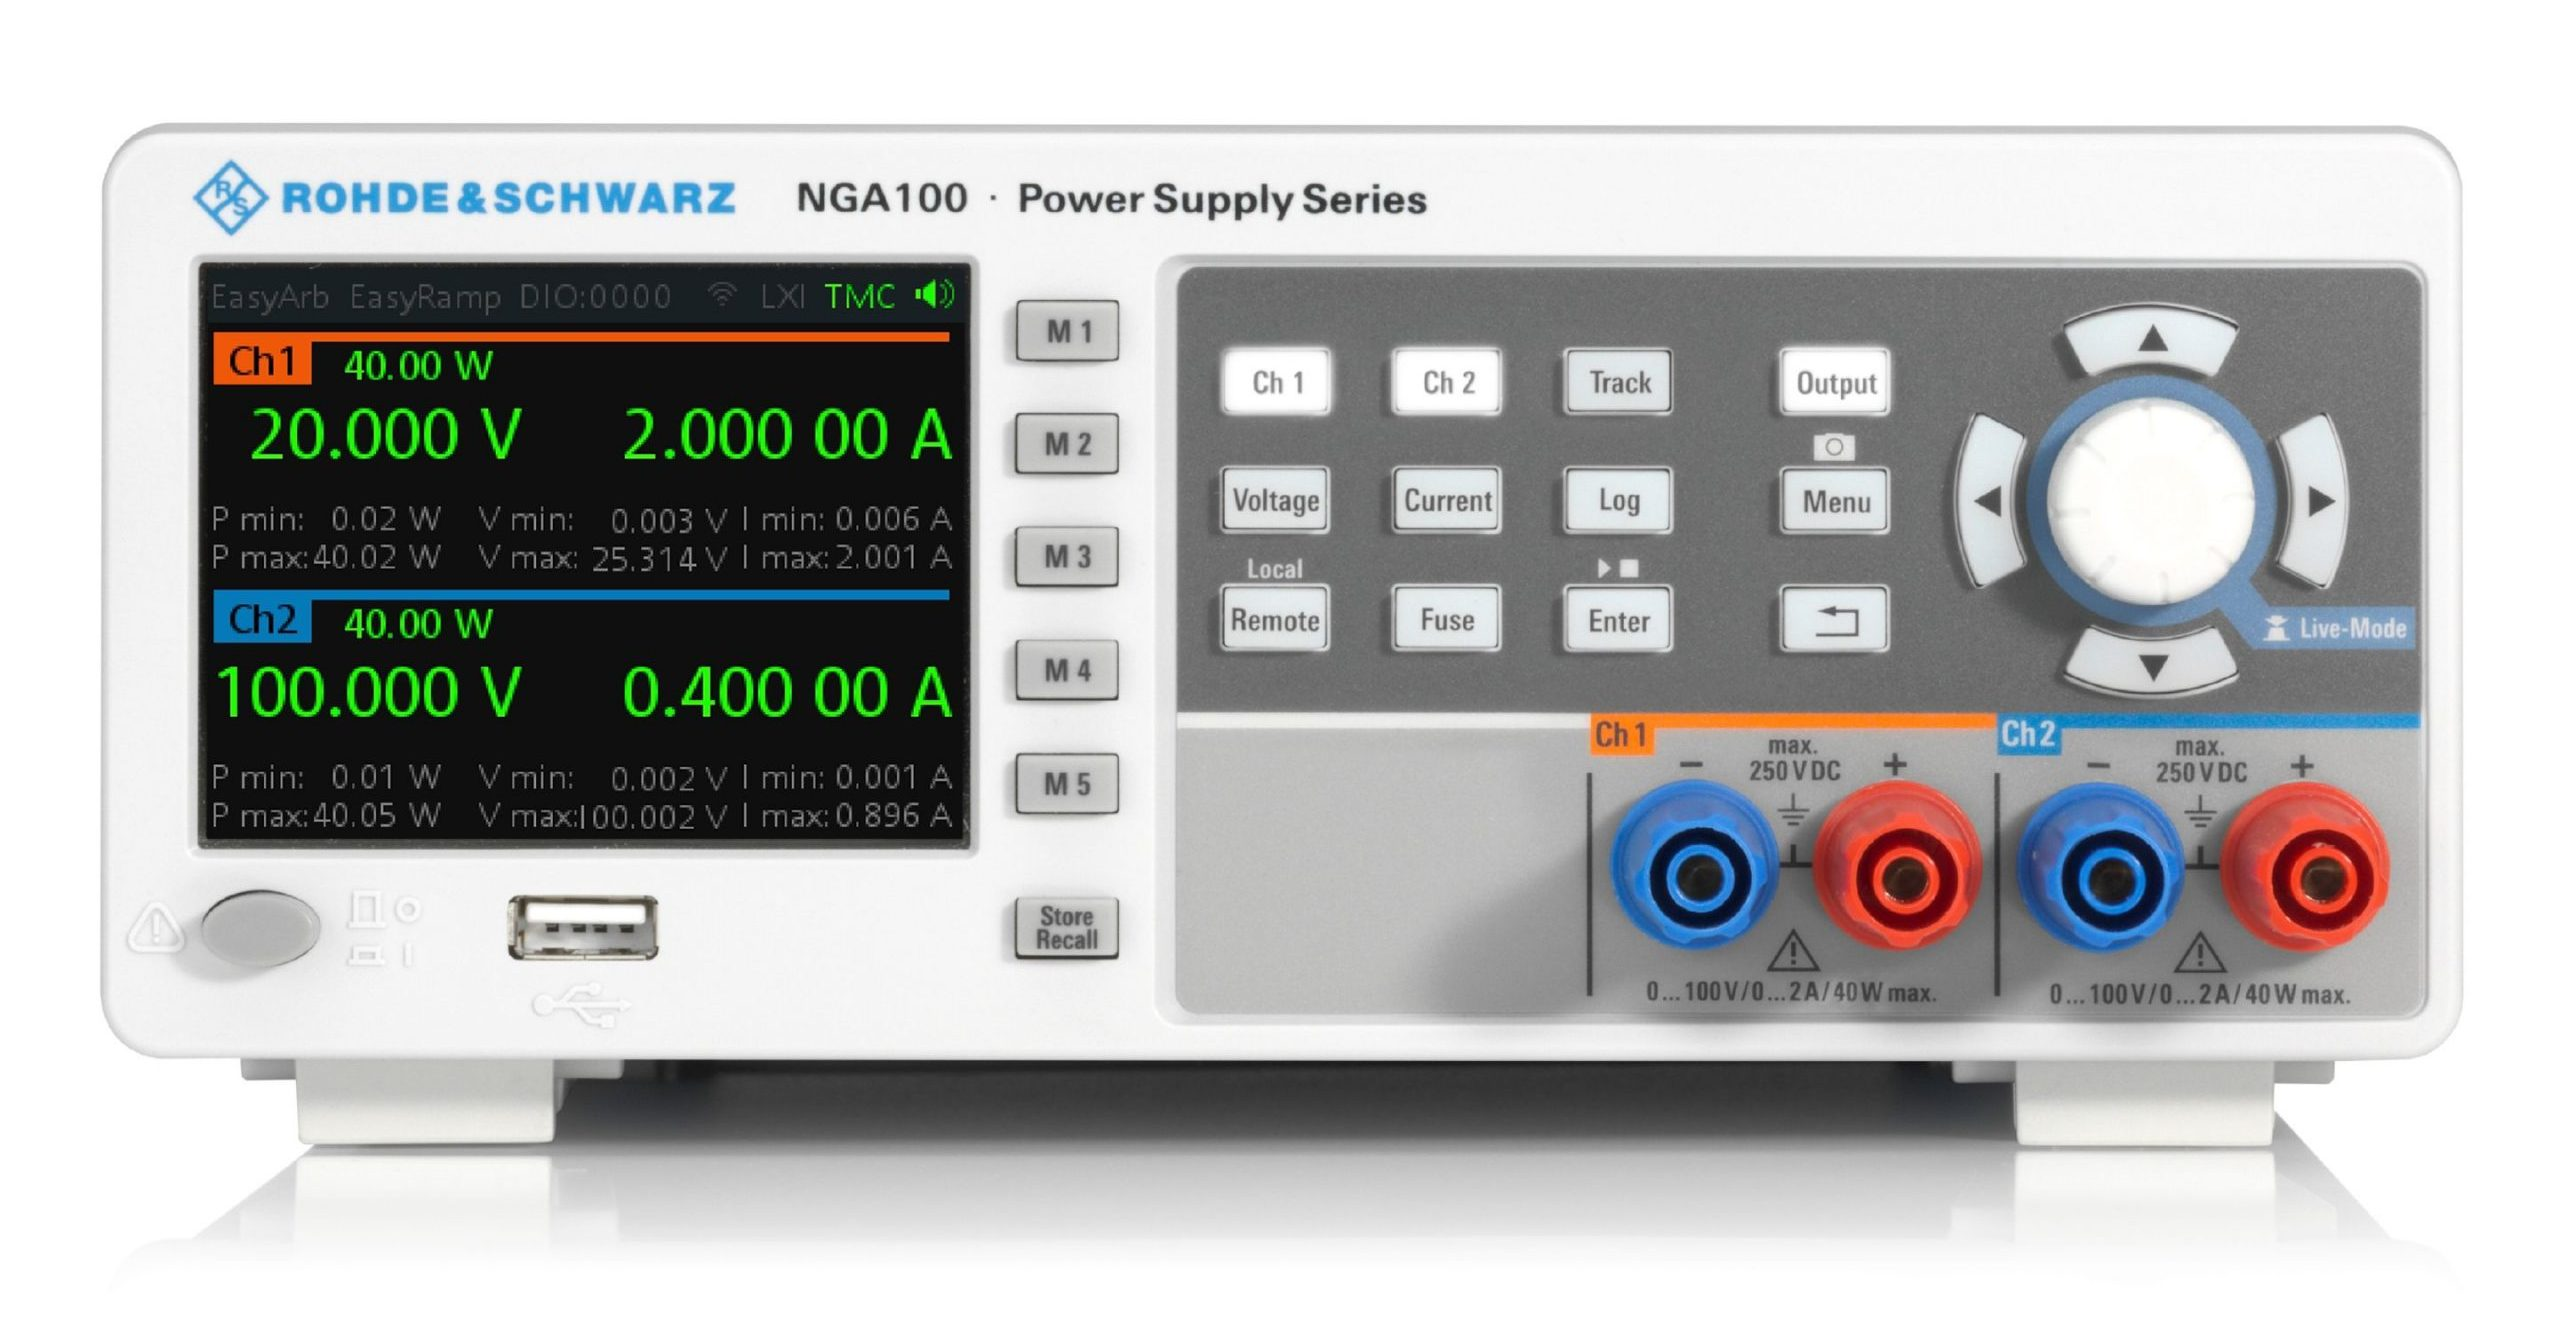 New Rohde & Schwarz NGA100 power supply series, stocked by Farnell